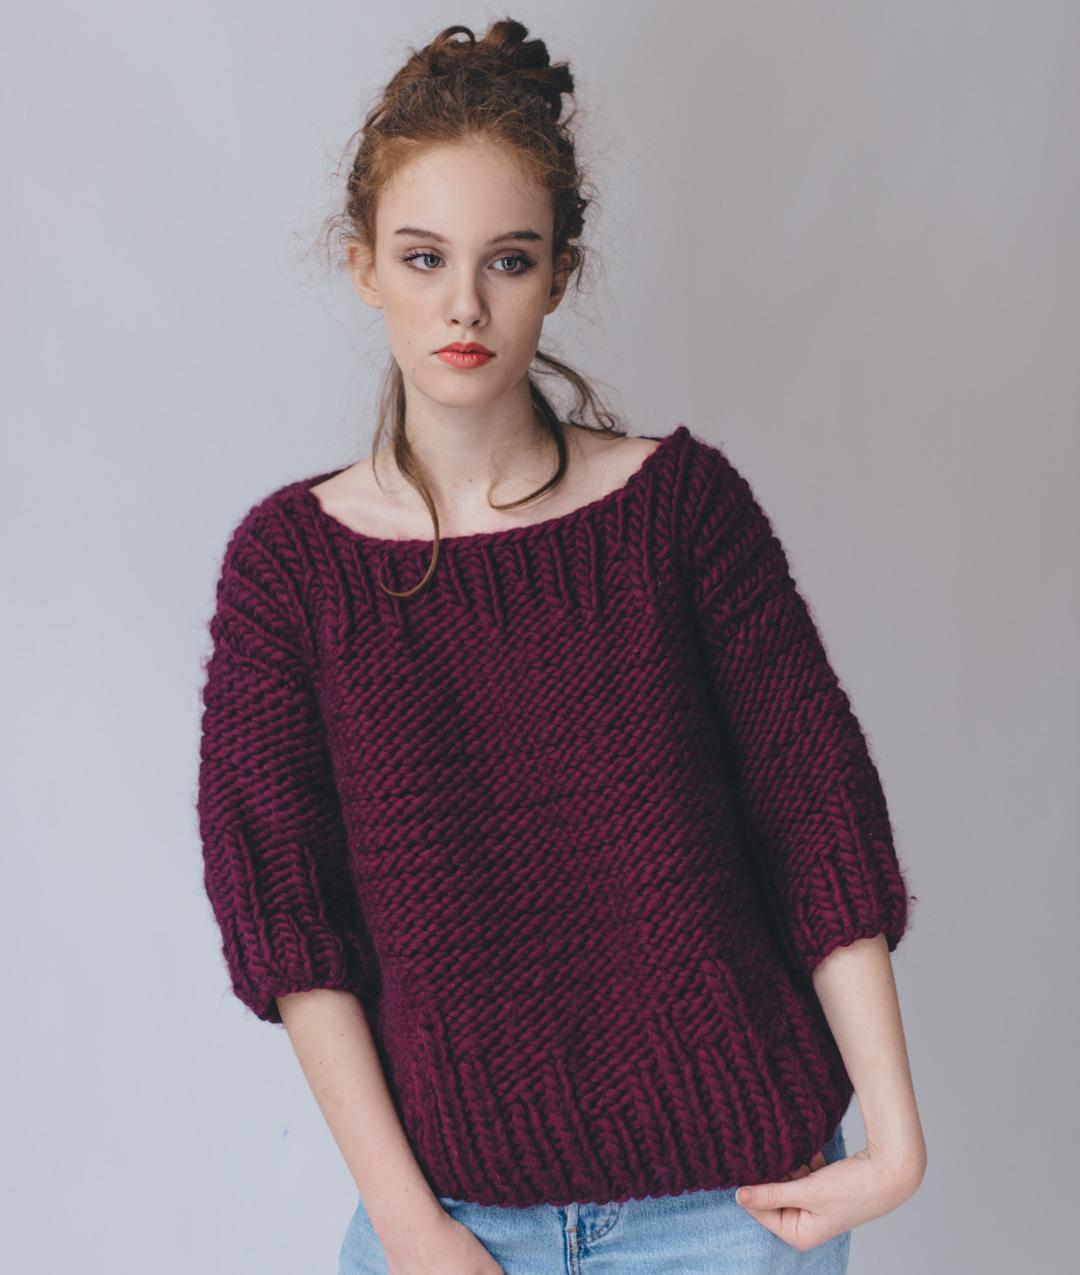 Sweaters and Tops - Wool - Beatrix Sweater - 1